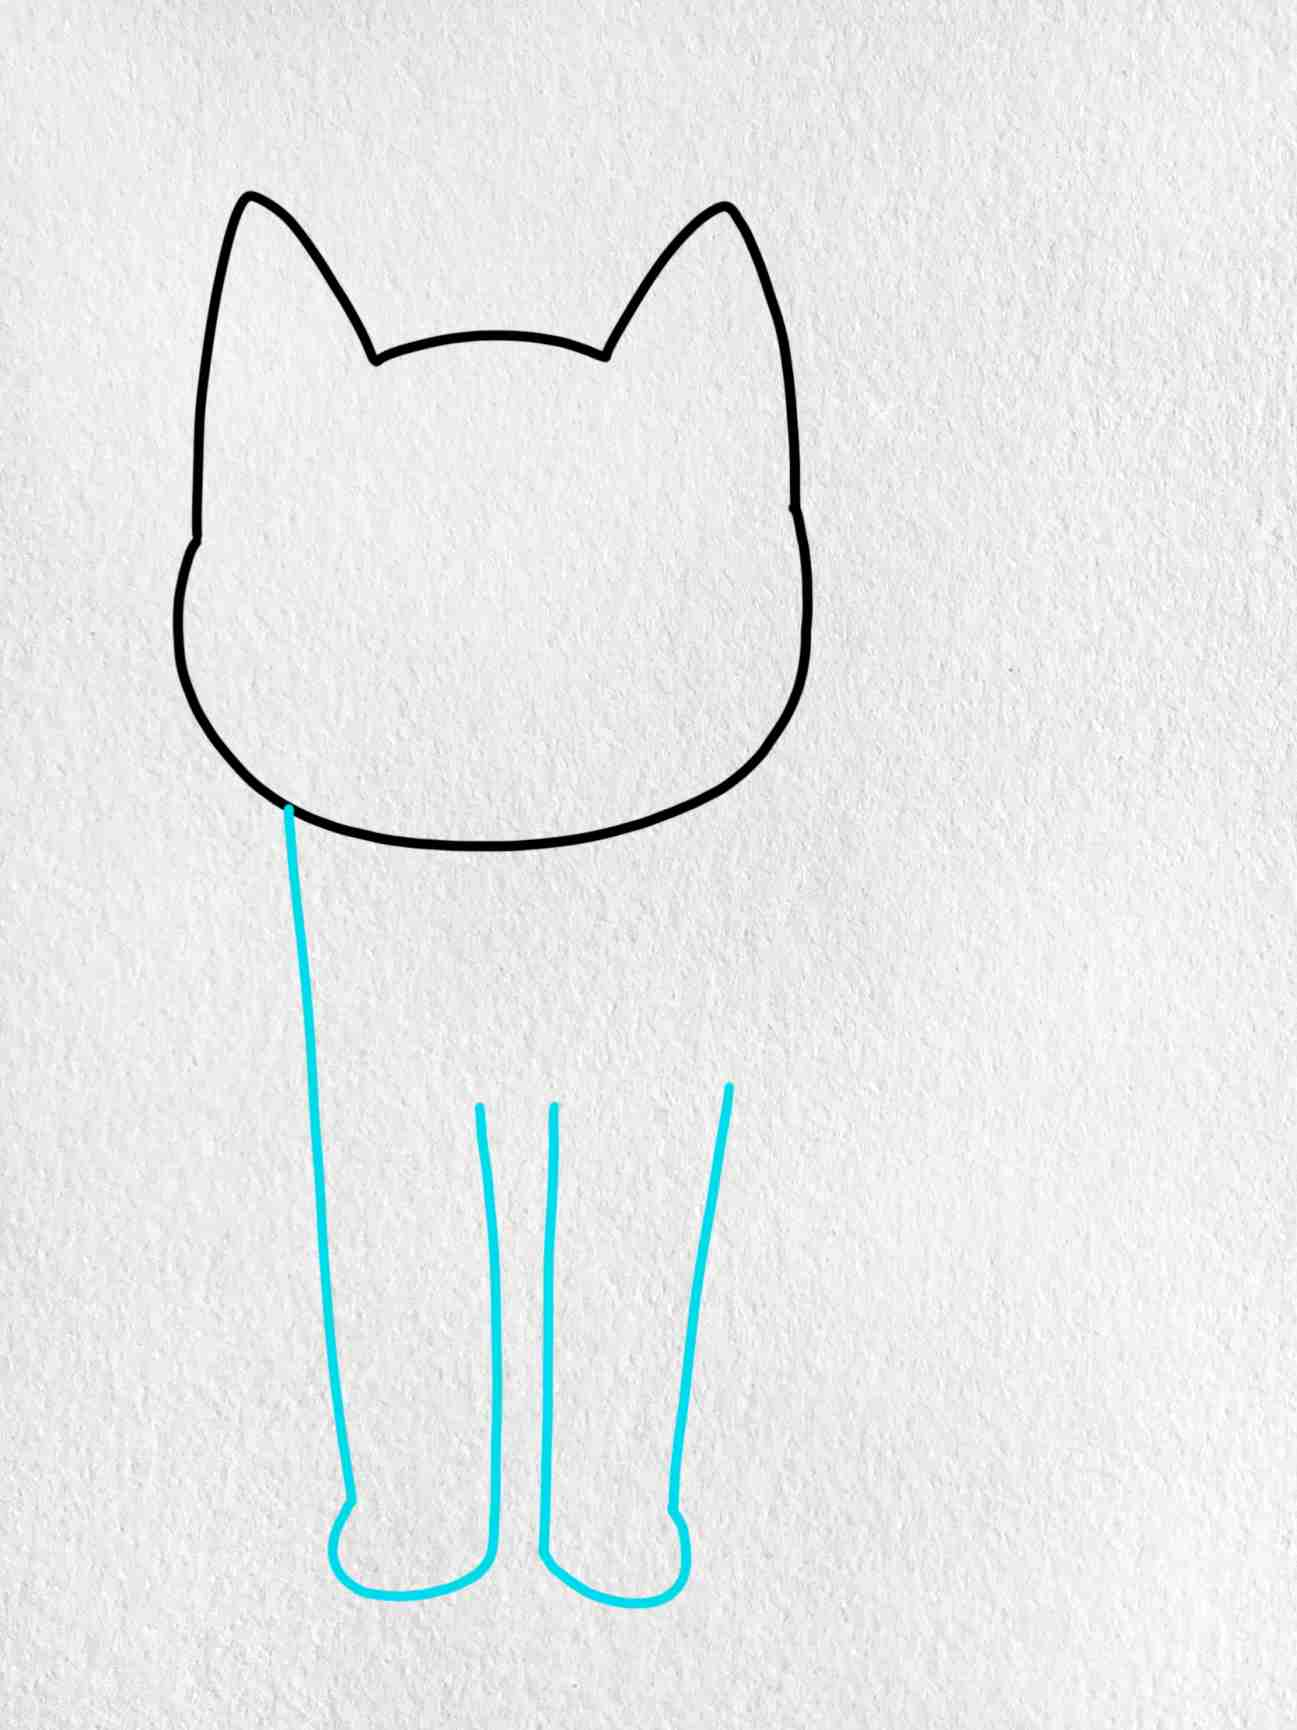 Cat Drawing For Kids: Step 2